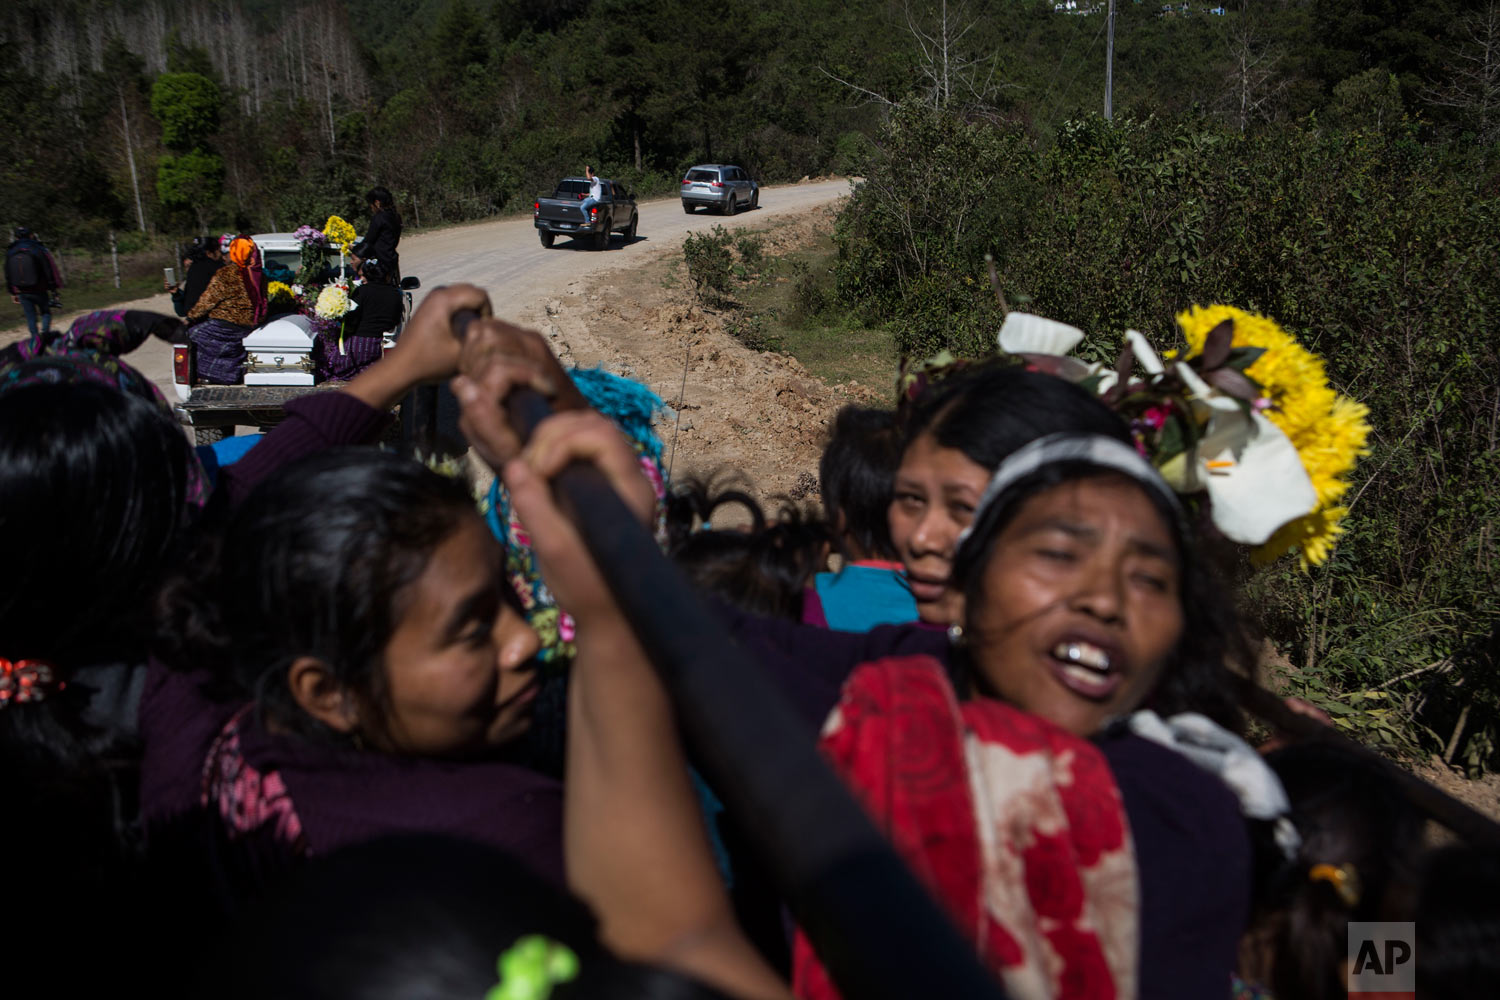 Women travel in the back of a truck during the funeral procession for Felipe Gomez Alonzo to the cemetery in Yalambojoch, Guatemala, Jan. 27, 2019. On Christmas Eve, the 8-year-old boy became the second Guatemalan child to die while in U.S. custody near the Mexican border. (AP Photo/Oliver de Ros)